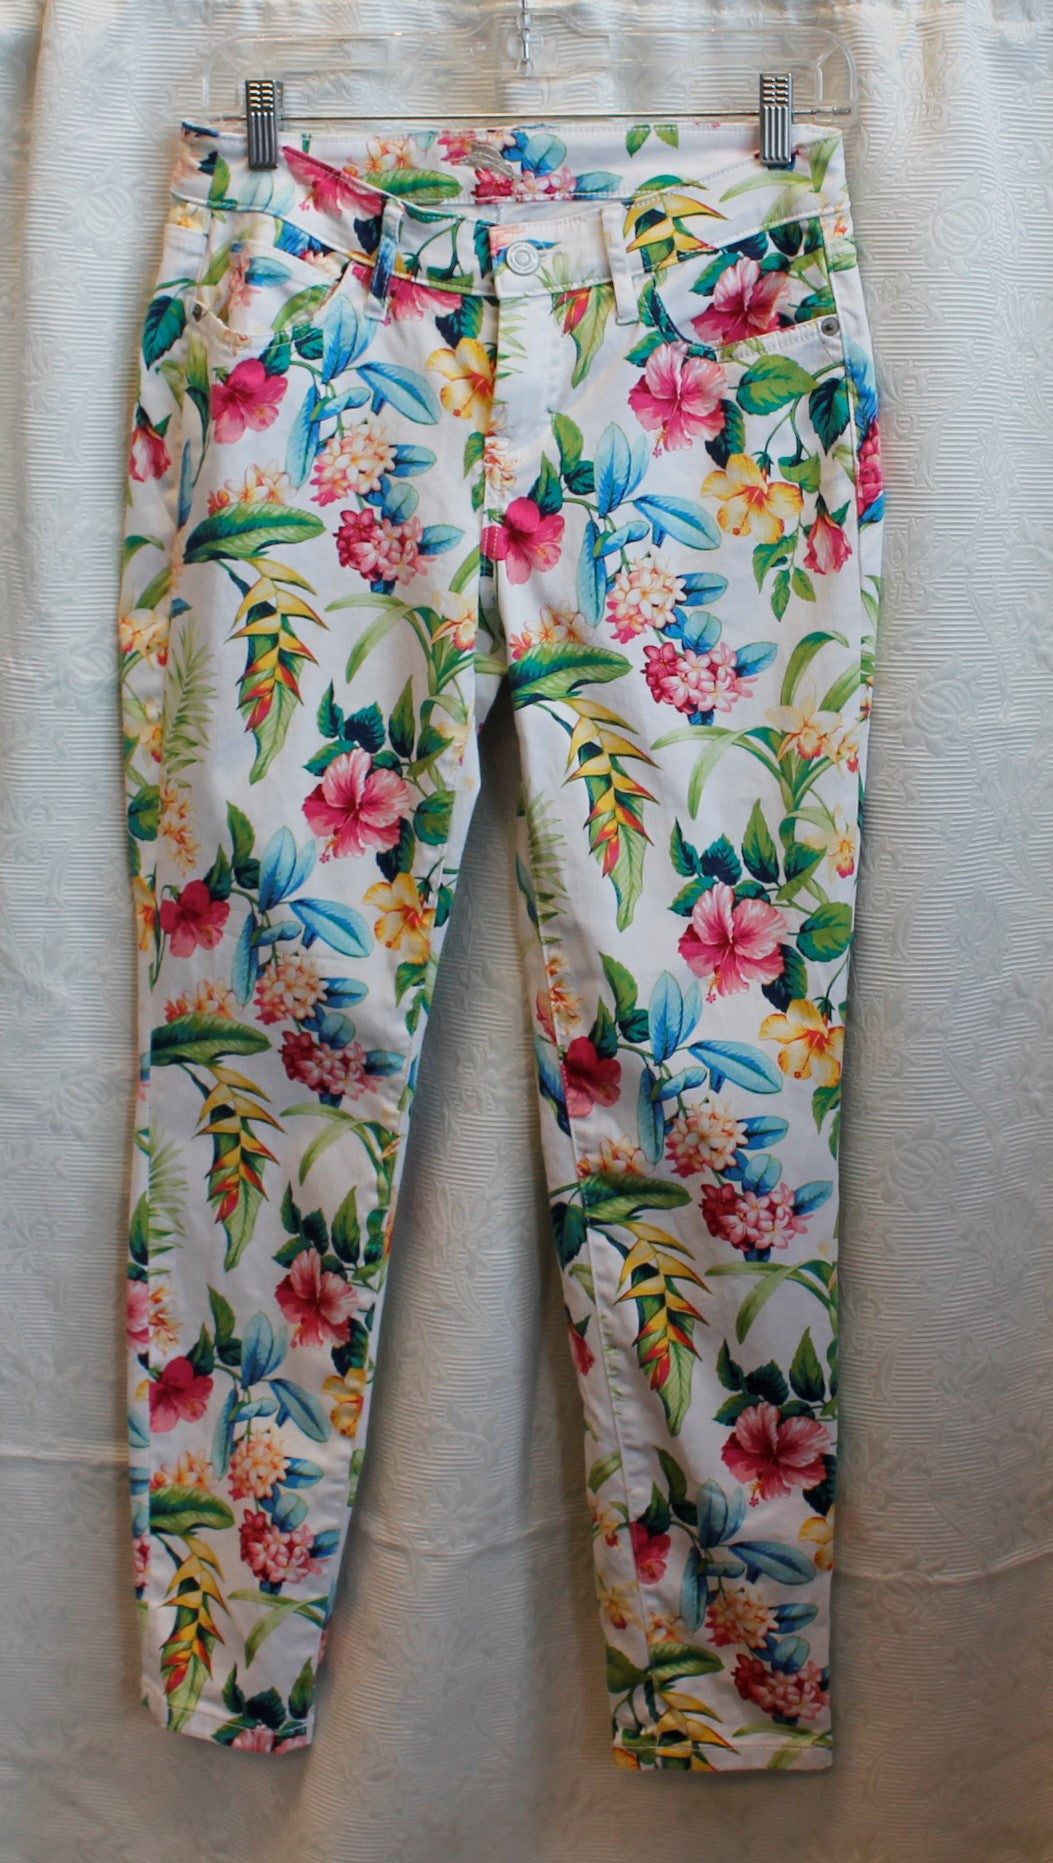 Women's Multicolored Flowered Pants             S                                        1/13C